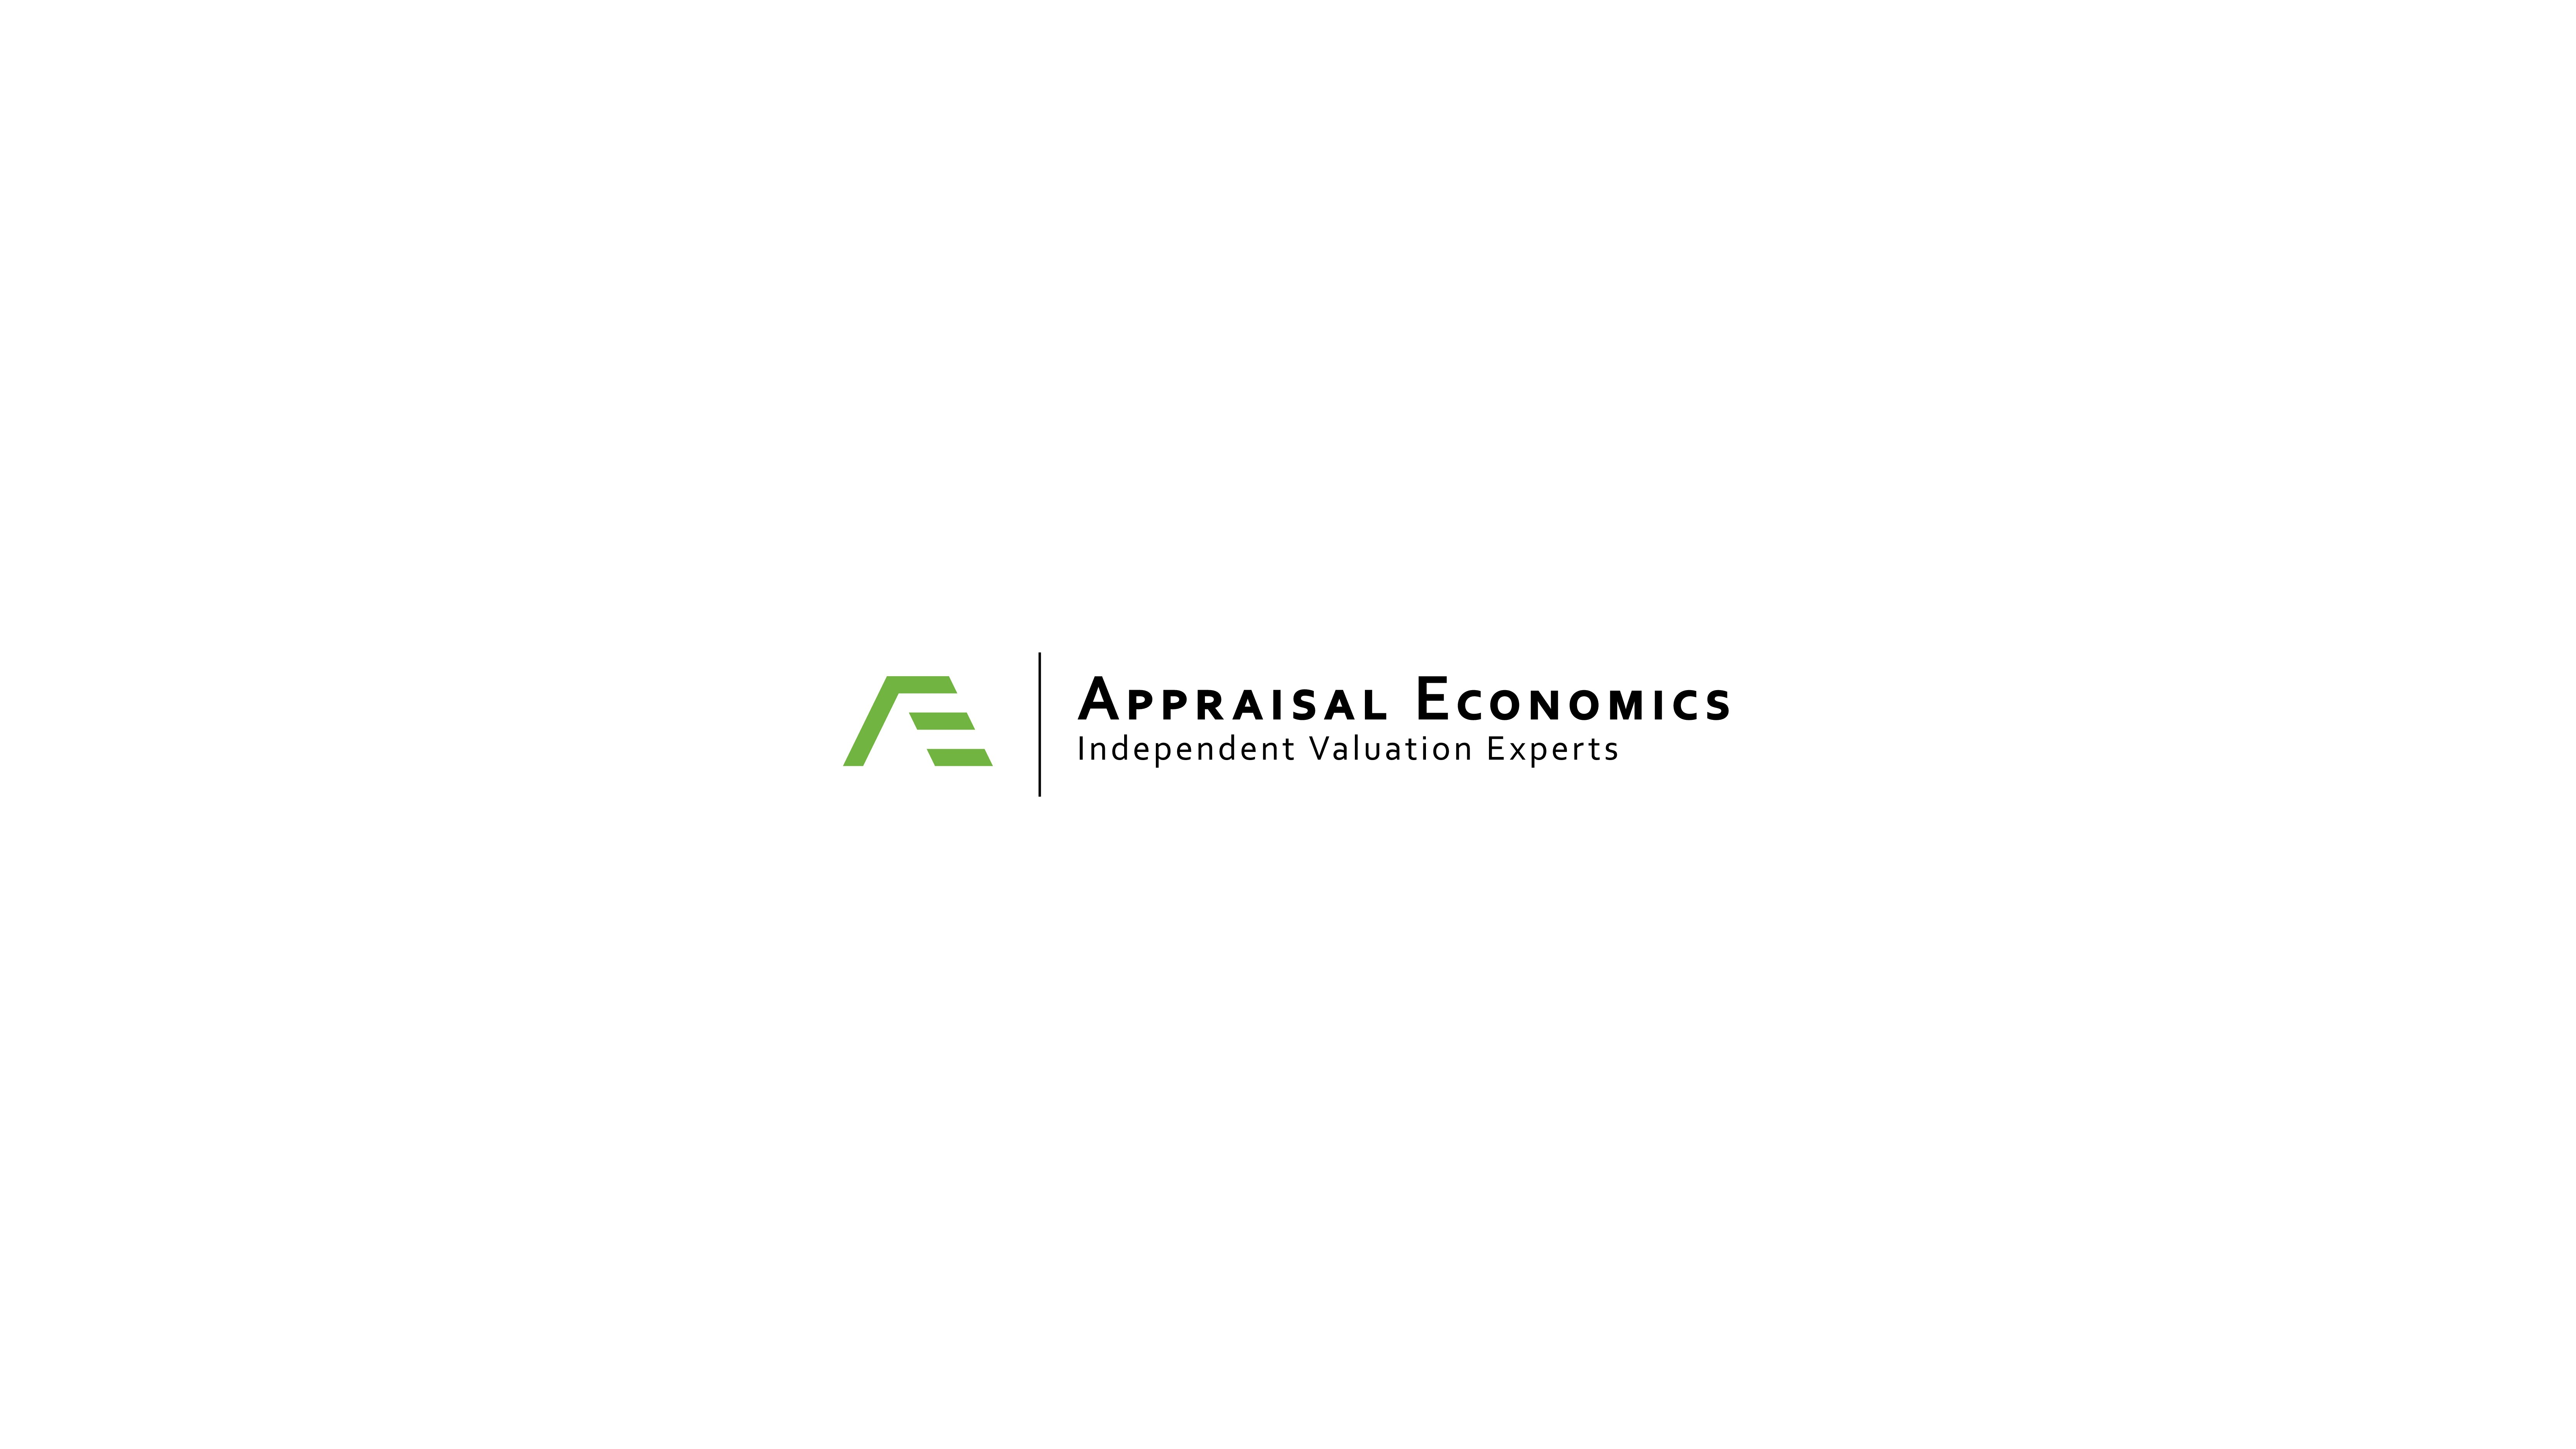 Brand Identity for established professional financial services firm